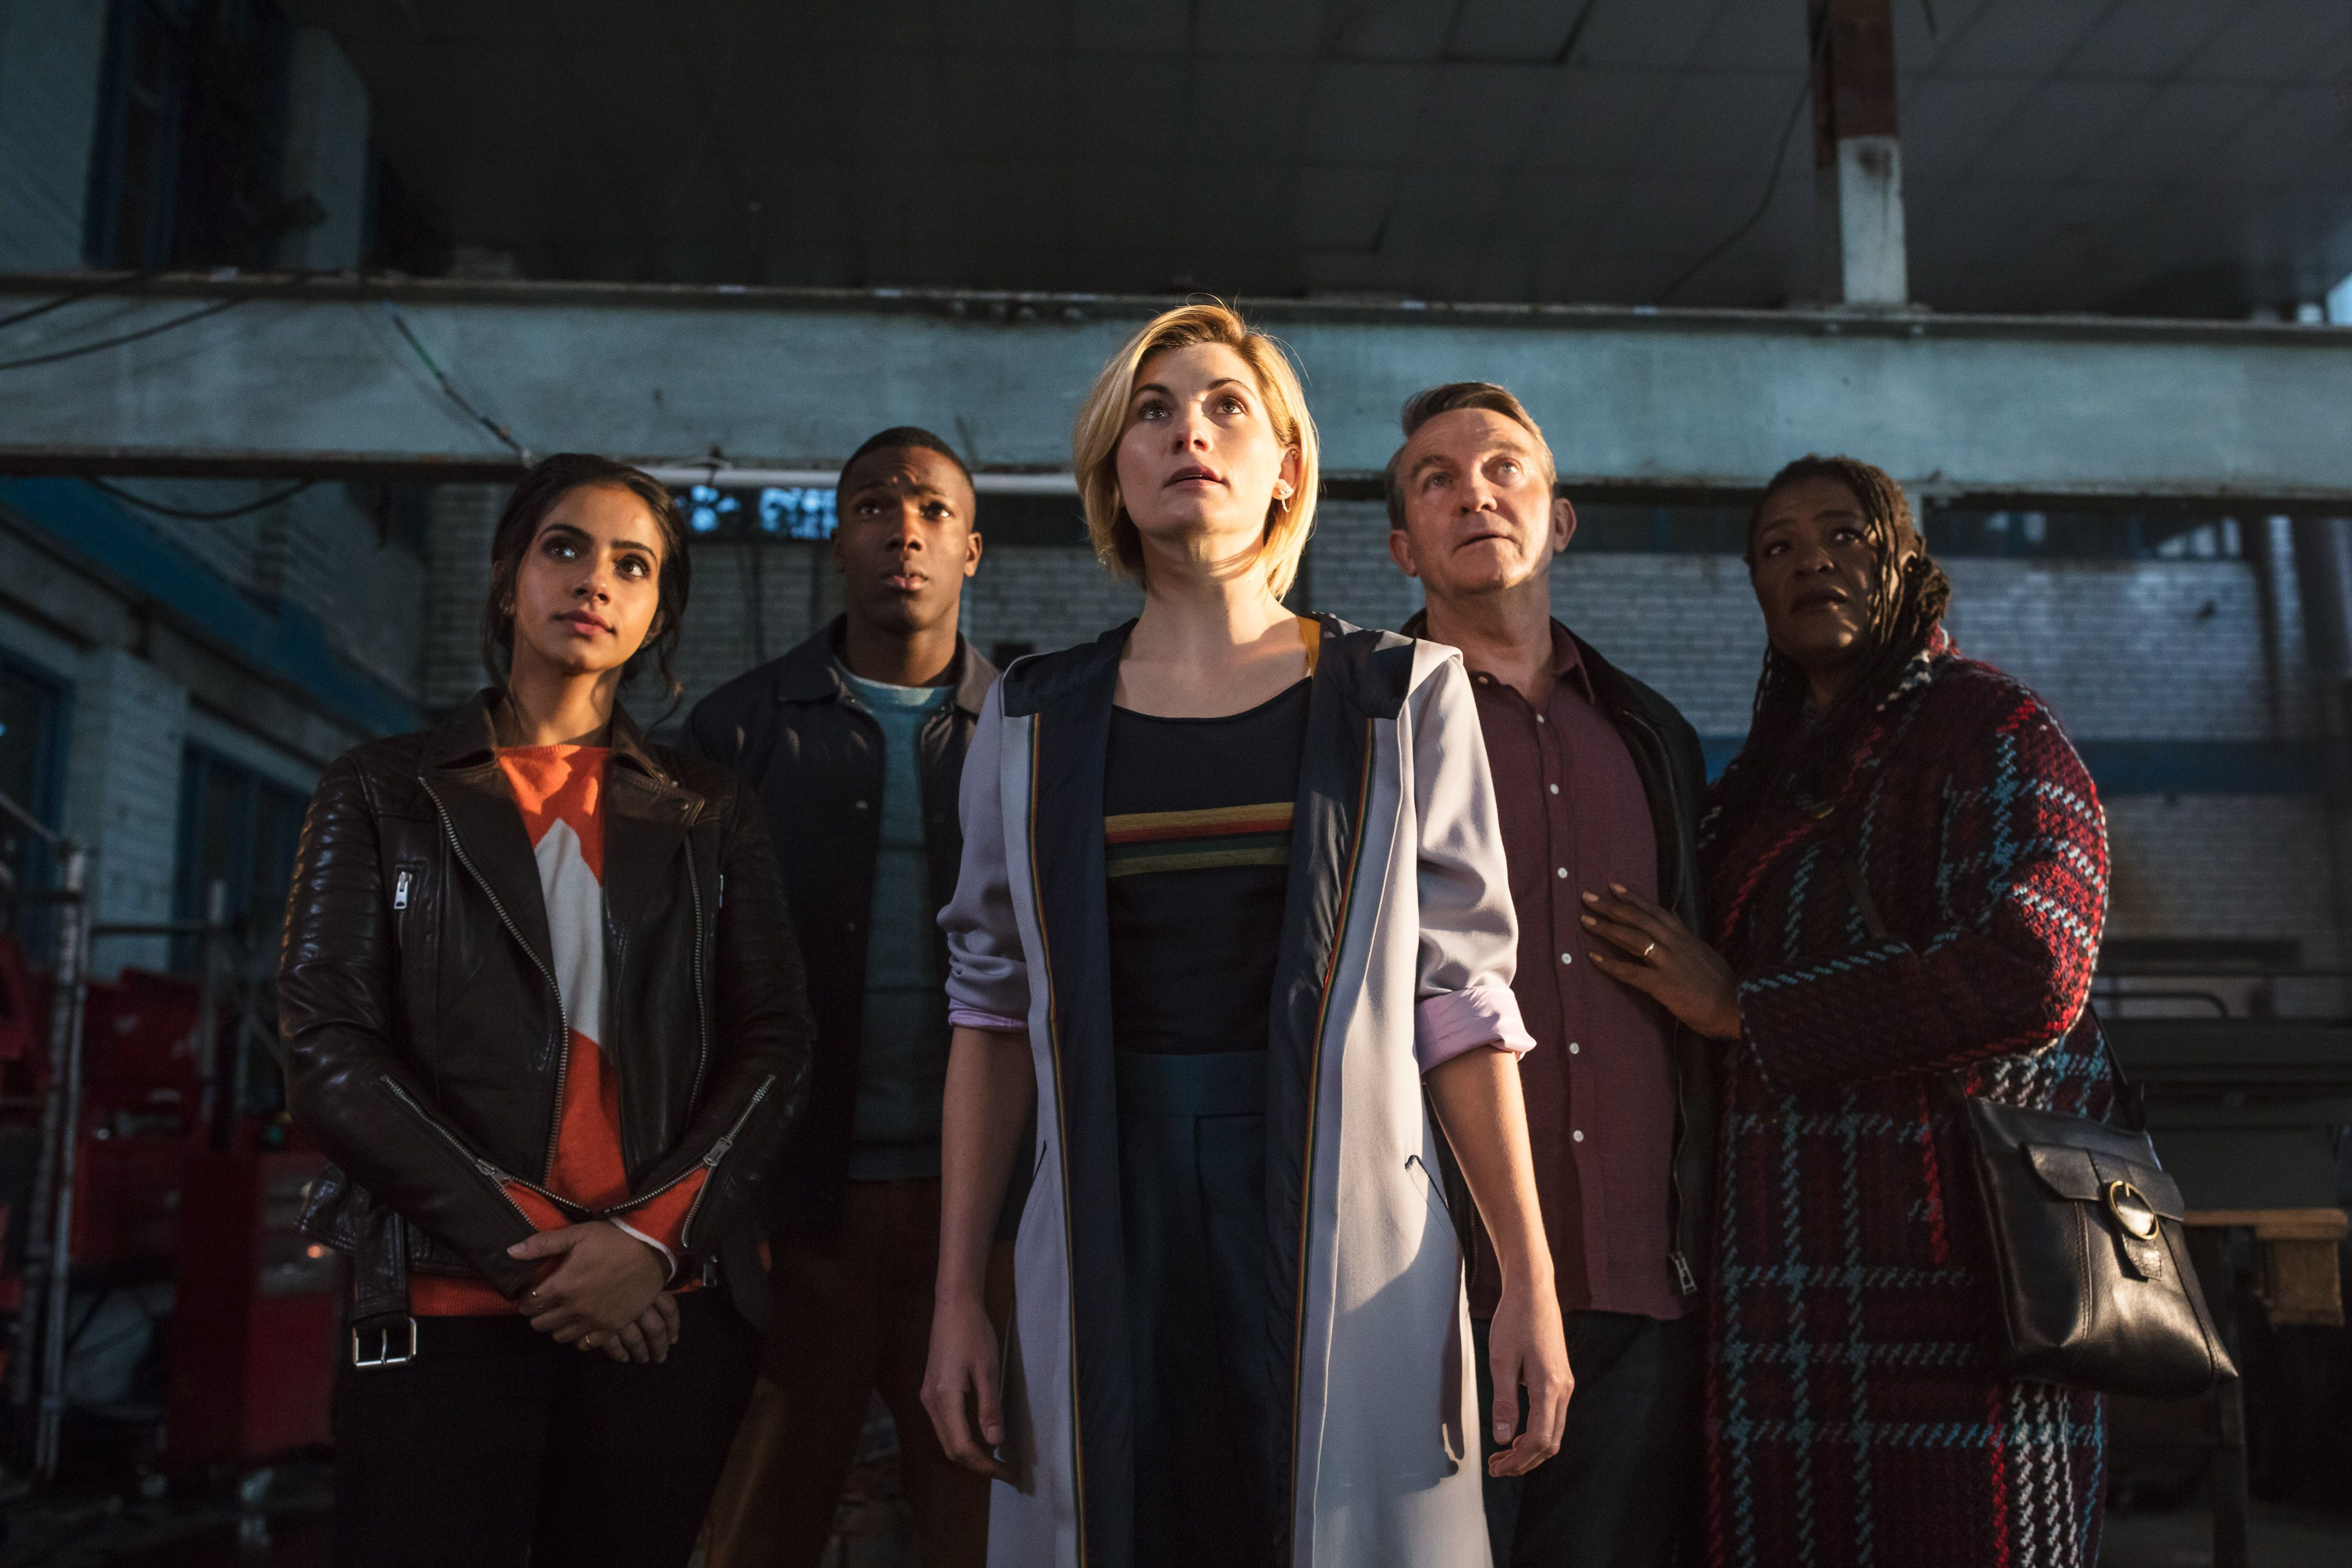 """Yasmin Khan, left to right, (Mandip Gill), Ryan Sinclair (Tosin Cole), The Doctor (Jodie Whittaker), Graham O'Brien (Bradley Walsh) and Grace (Sharon D. Clarke) are shown in a scene from """"Doctor Who."""""""